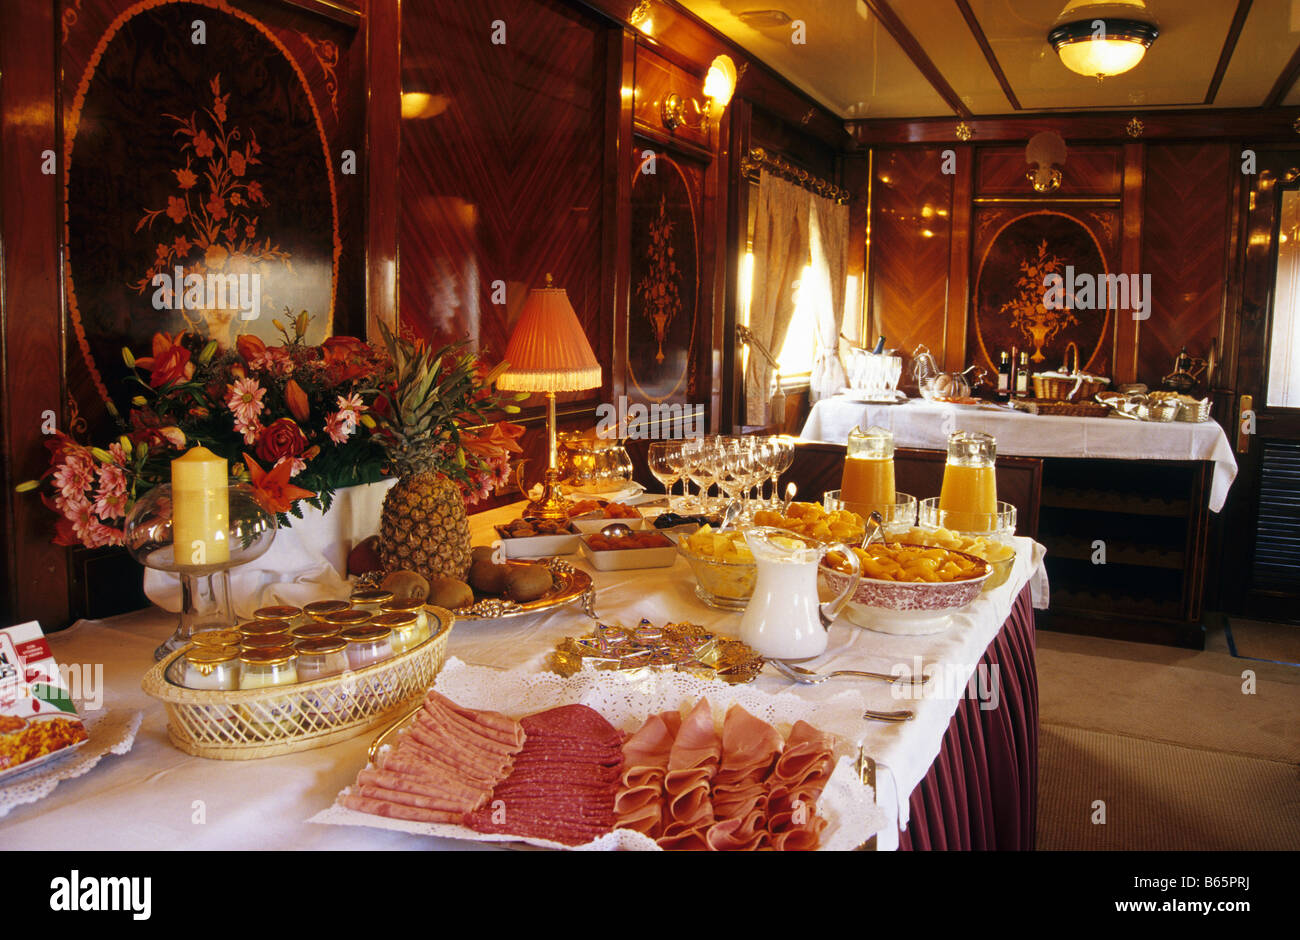 Lamparas Al Andalus Breakfast In Al Andalus Express Train Andalusia Region